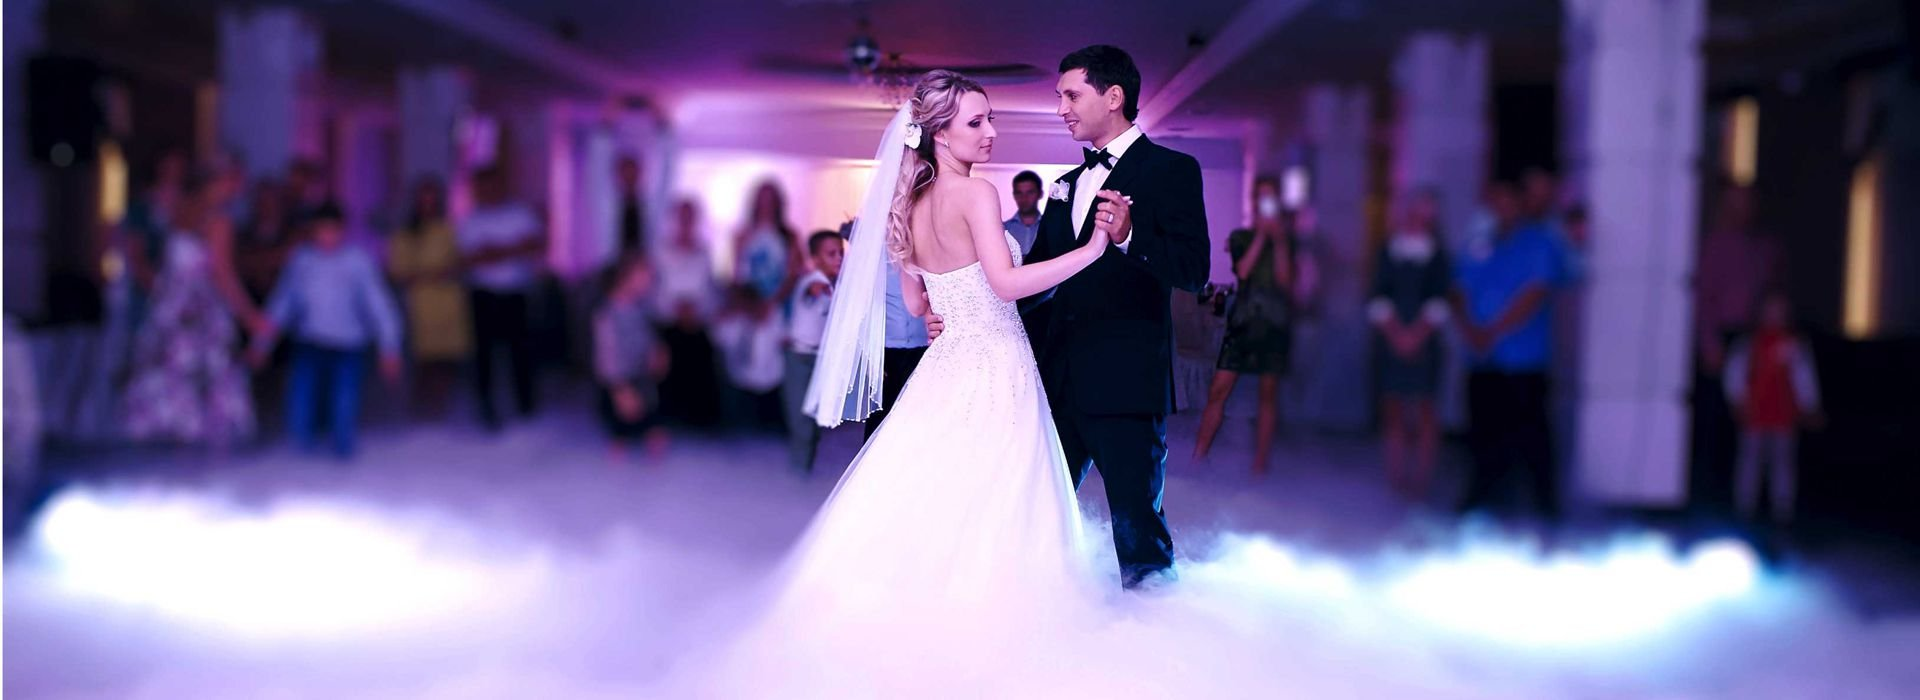 Houston Wedding DJ, DJs in Houston, Bride and Groom, Dancing On A Cloud for their First Dance at their Wedding, Houston Quinceañera DJ, Father Daughter Dance, Awesome Music Entertainment, Awesome Event Pros, AME DJs, Sonido DJ Sammy de Houston